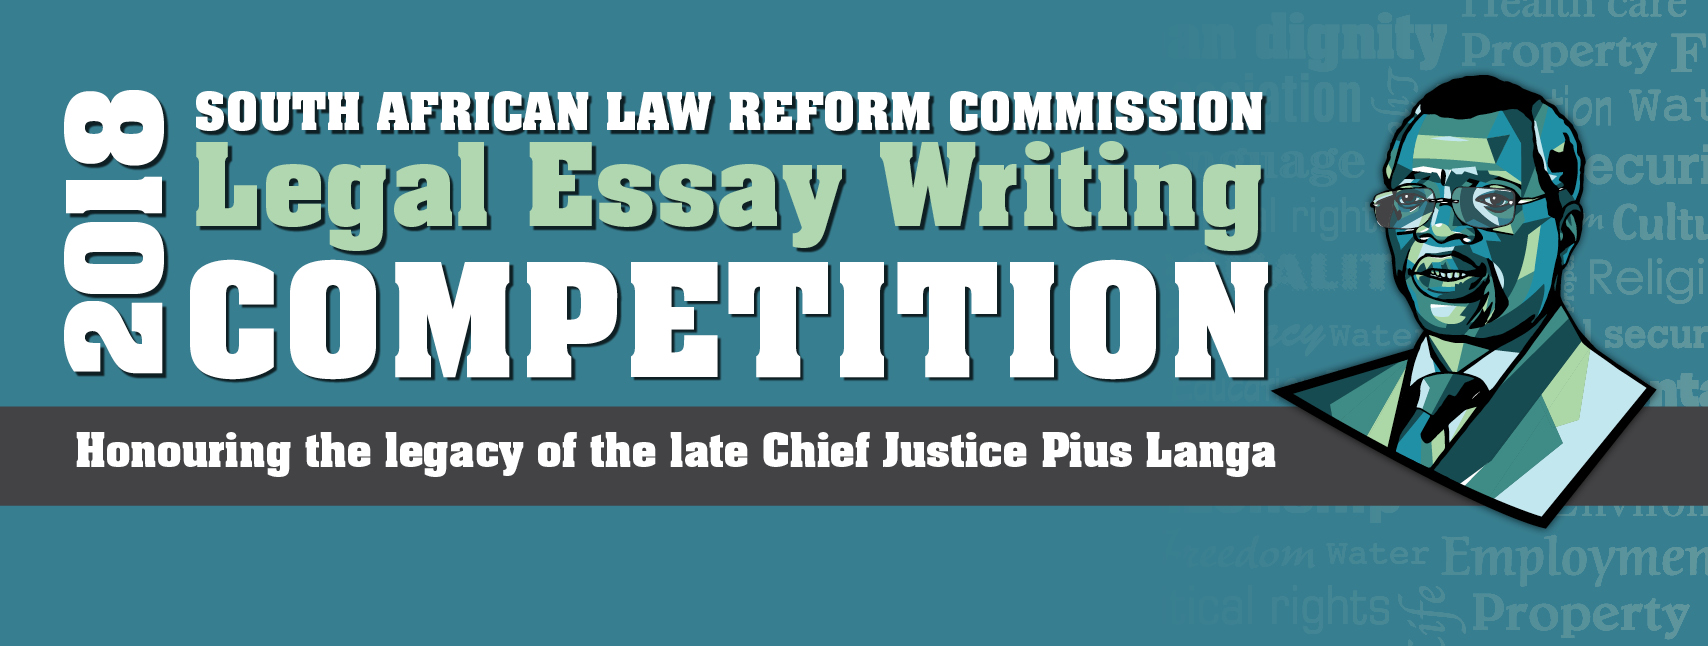 South African Law Reform Commission Legal Essay Writing Competition  The Winners And Supervising Lecturers As Well As Runnersup Will Be  Hosted At A Function Sponsored By The South African Law Reform Commission